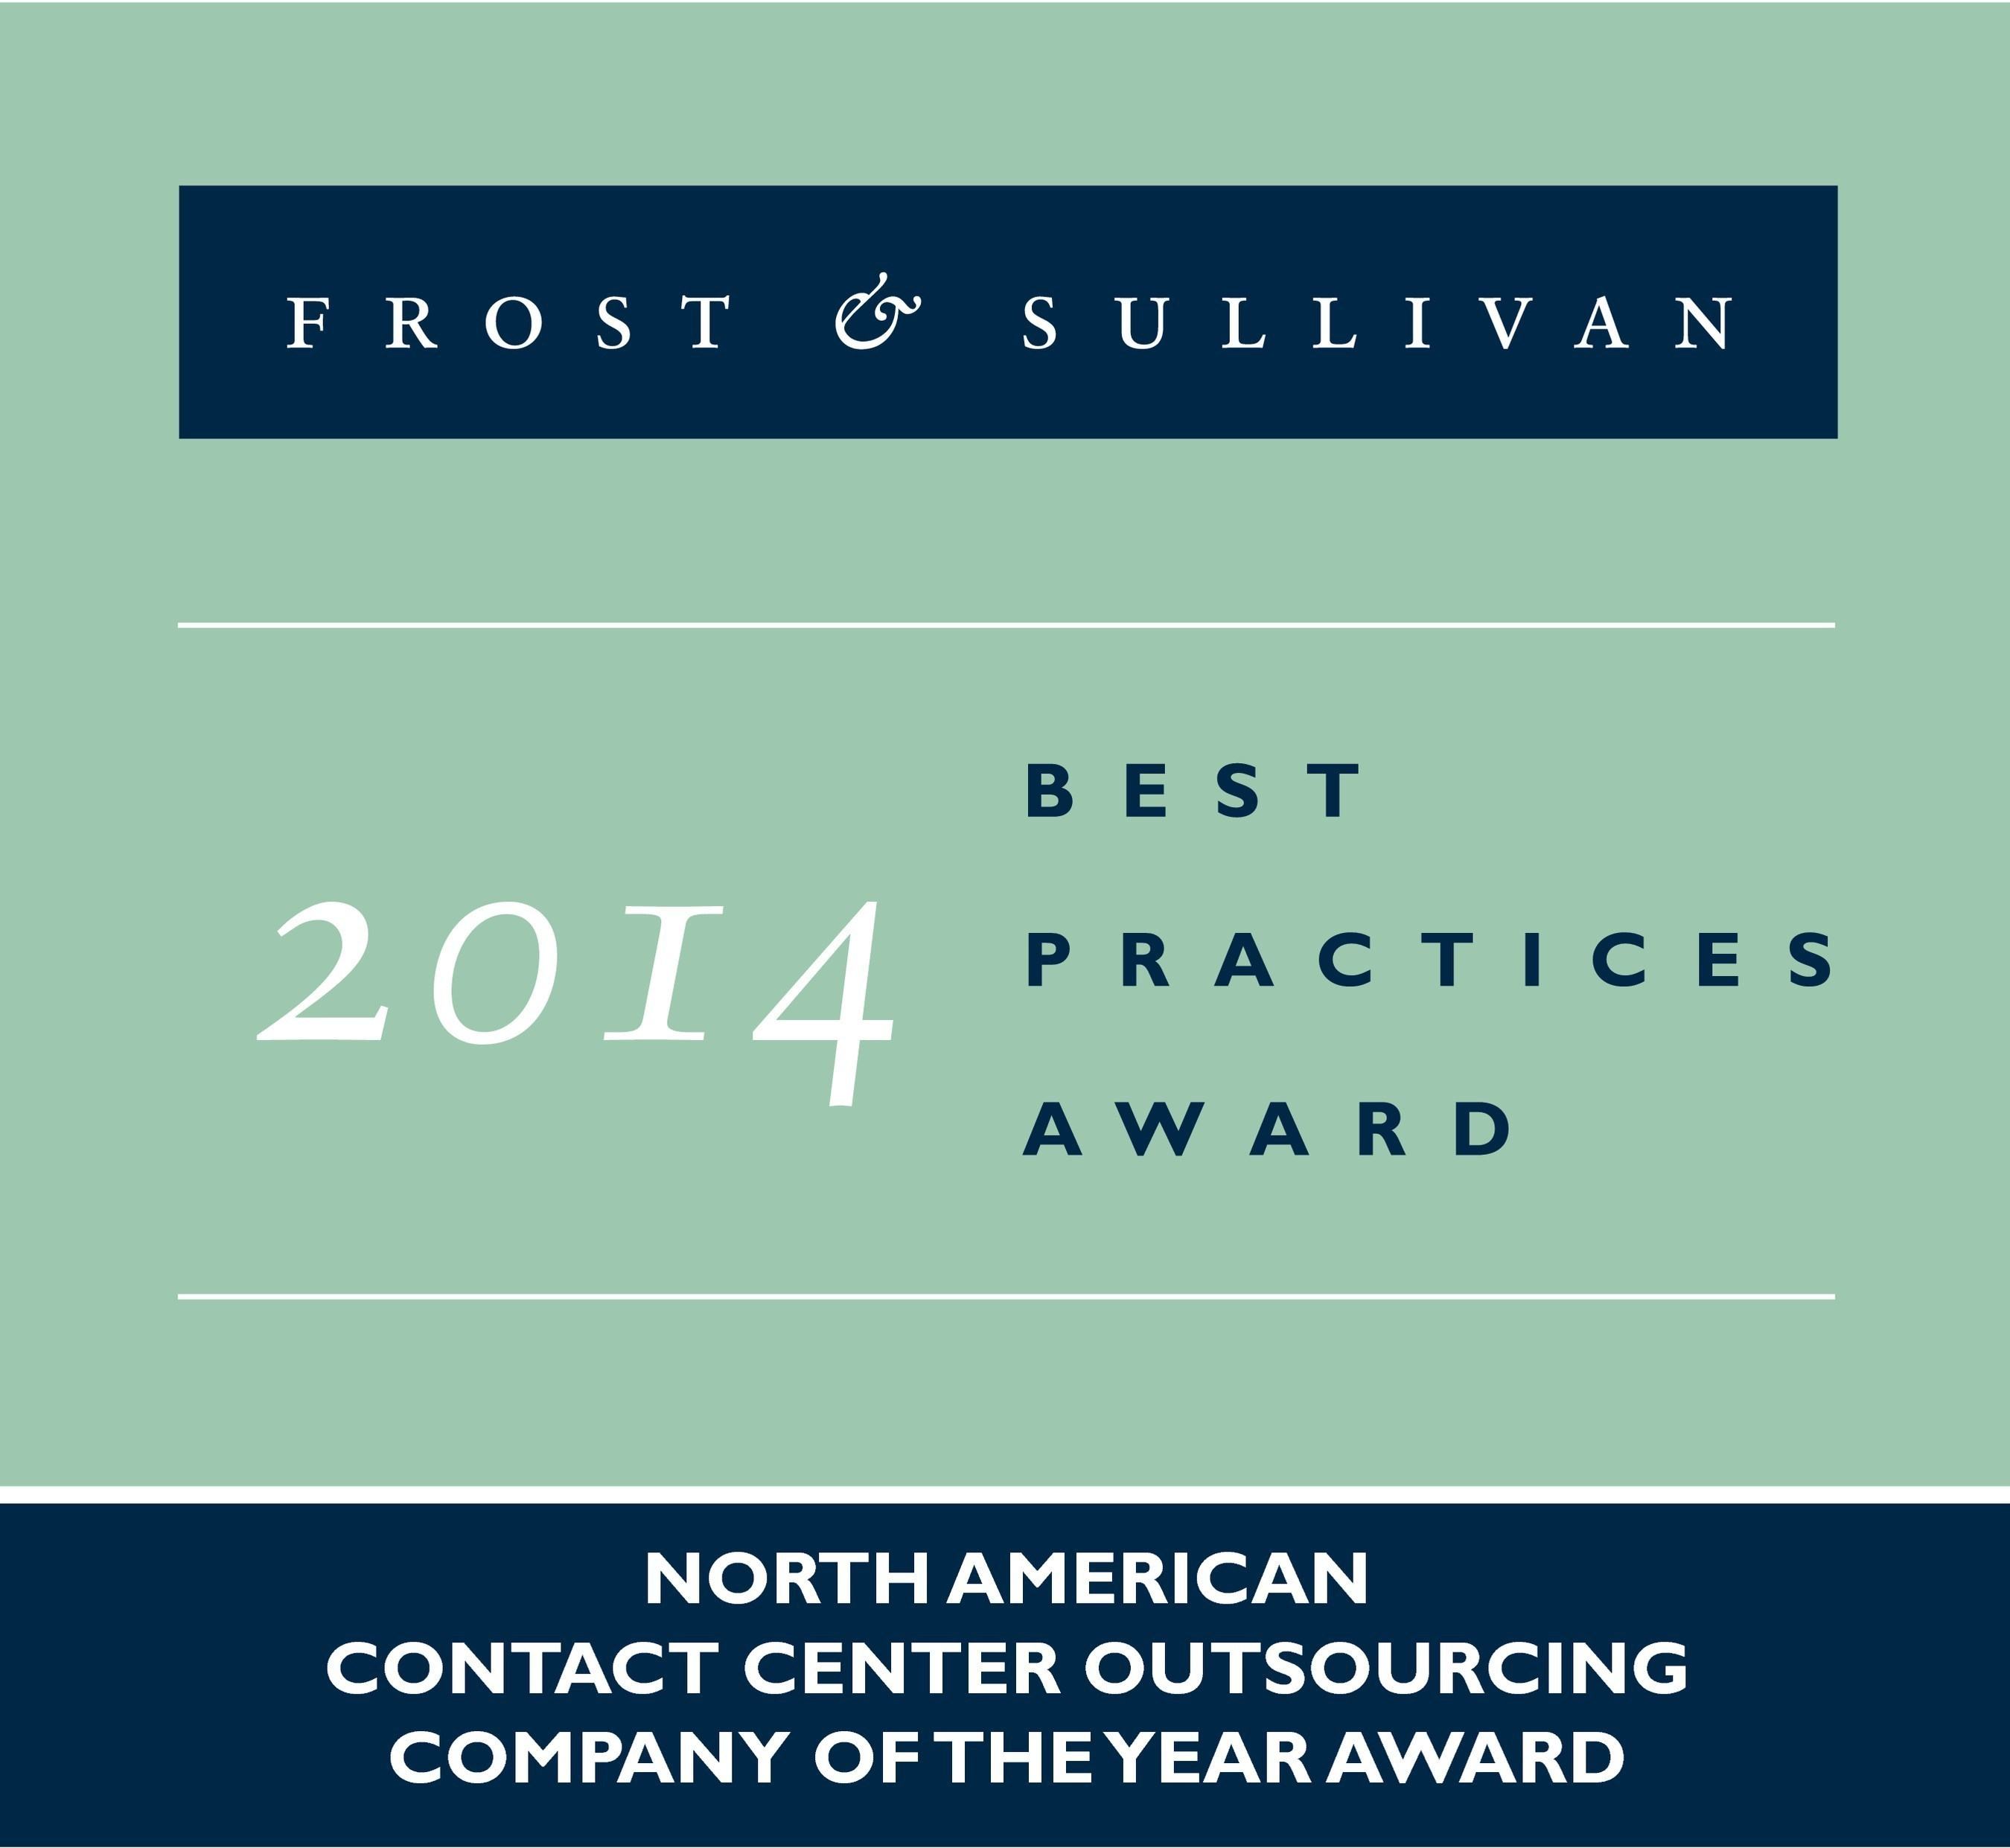 Teleperformance Recognized for its Innovation, Global Best Practices and Excellent Financial